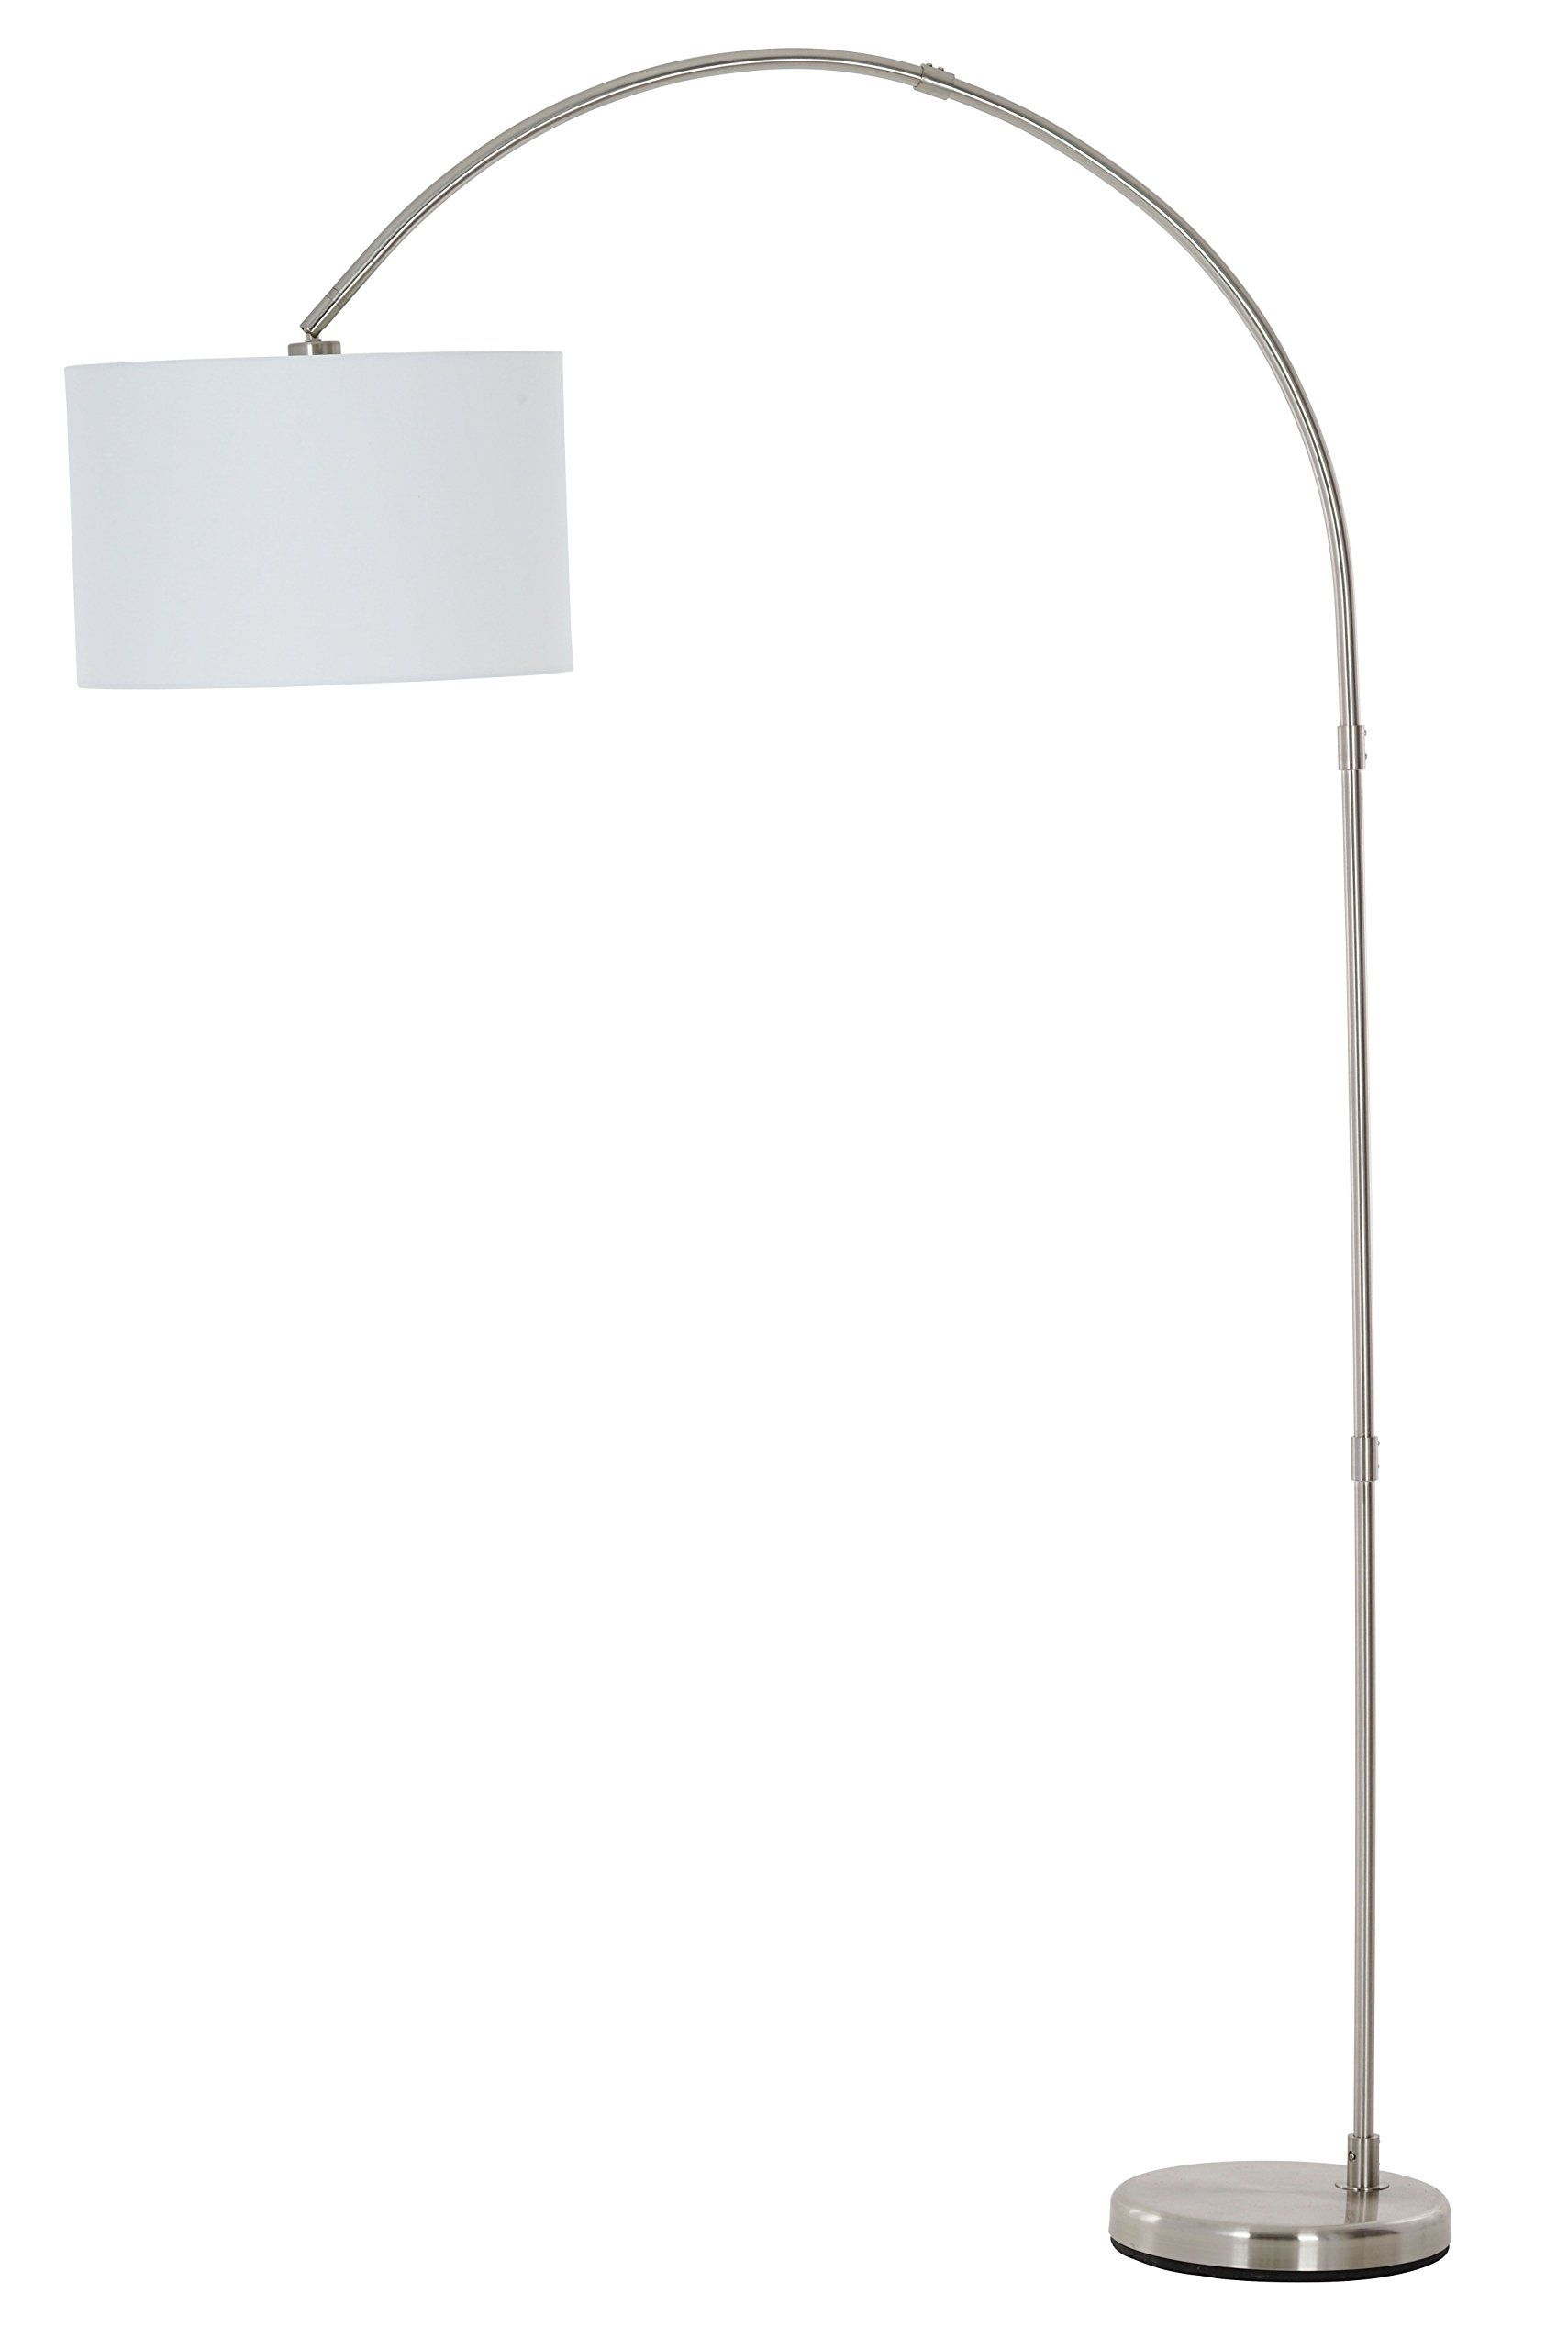 Catalina Lighting 20642 000 Susan Arc Floor Lamp With White Linen Drum Shade,  Silver